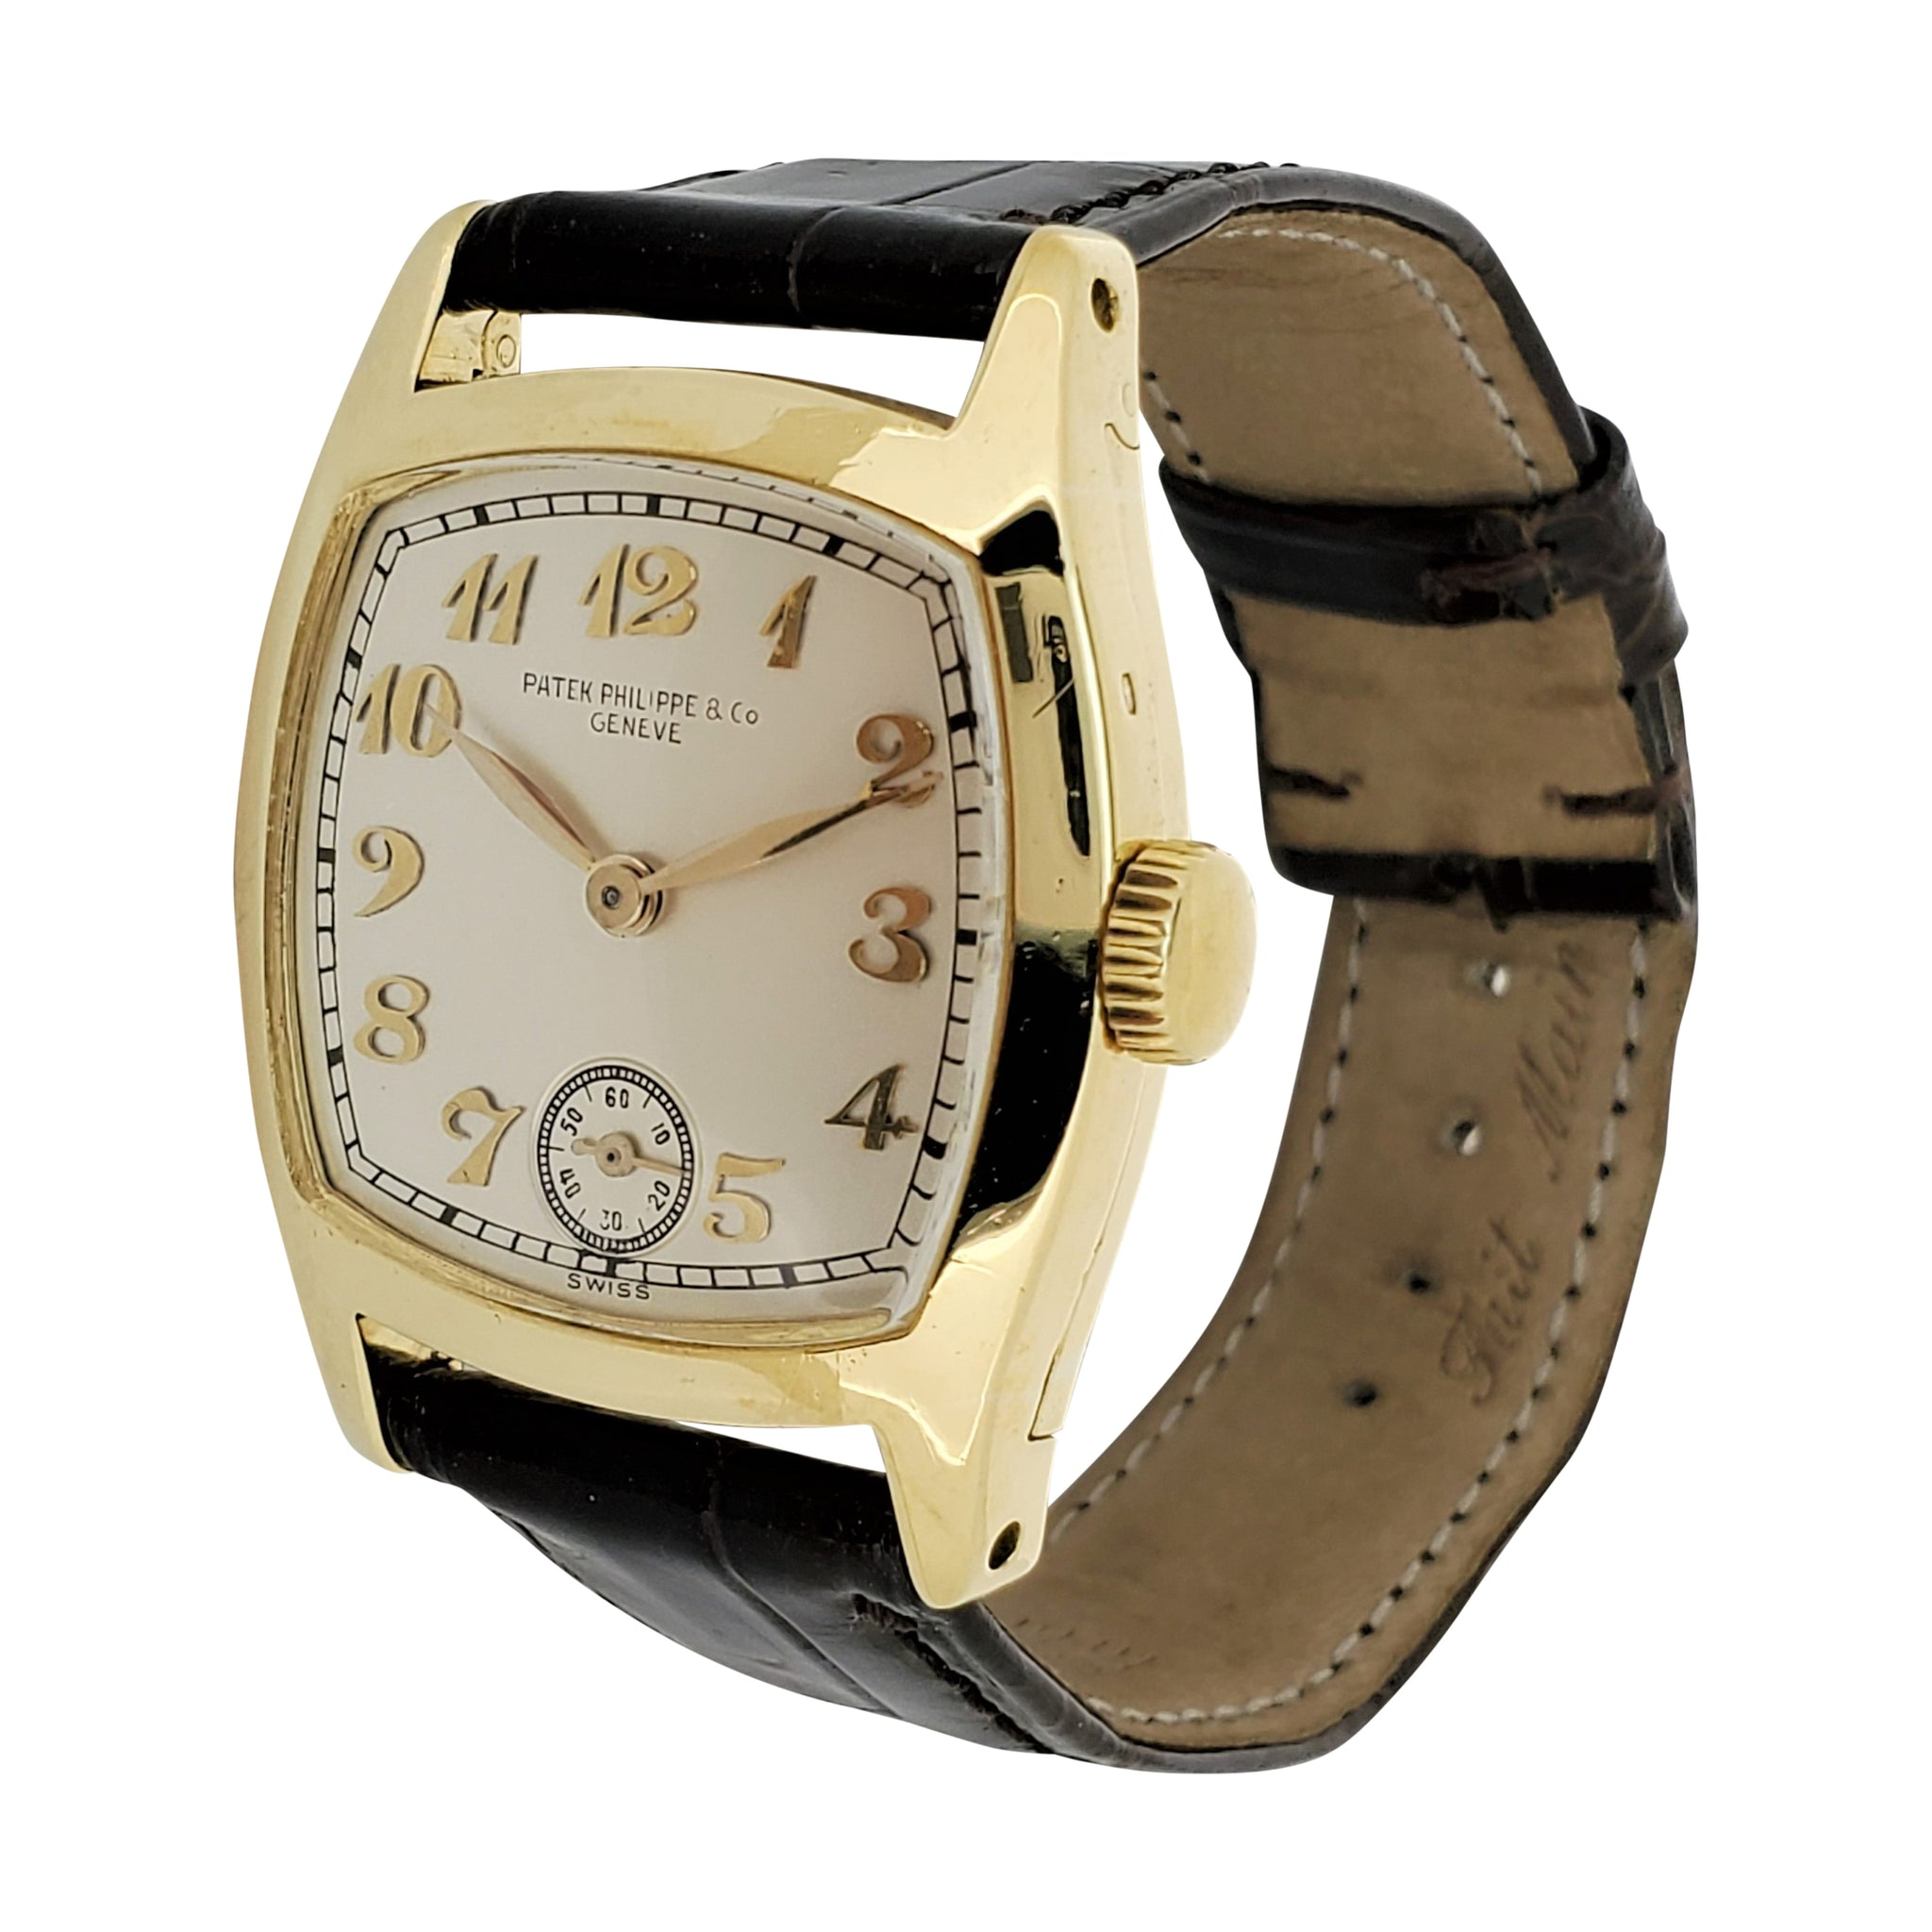 Patek Philippe Early No. 7 Cushion Vintage Watch. C. 1924